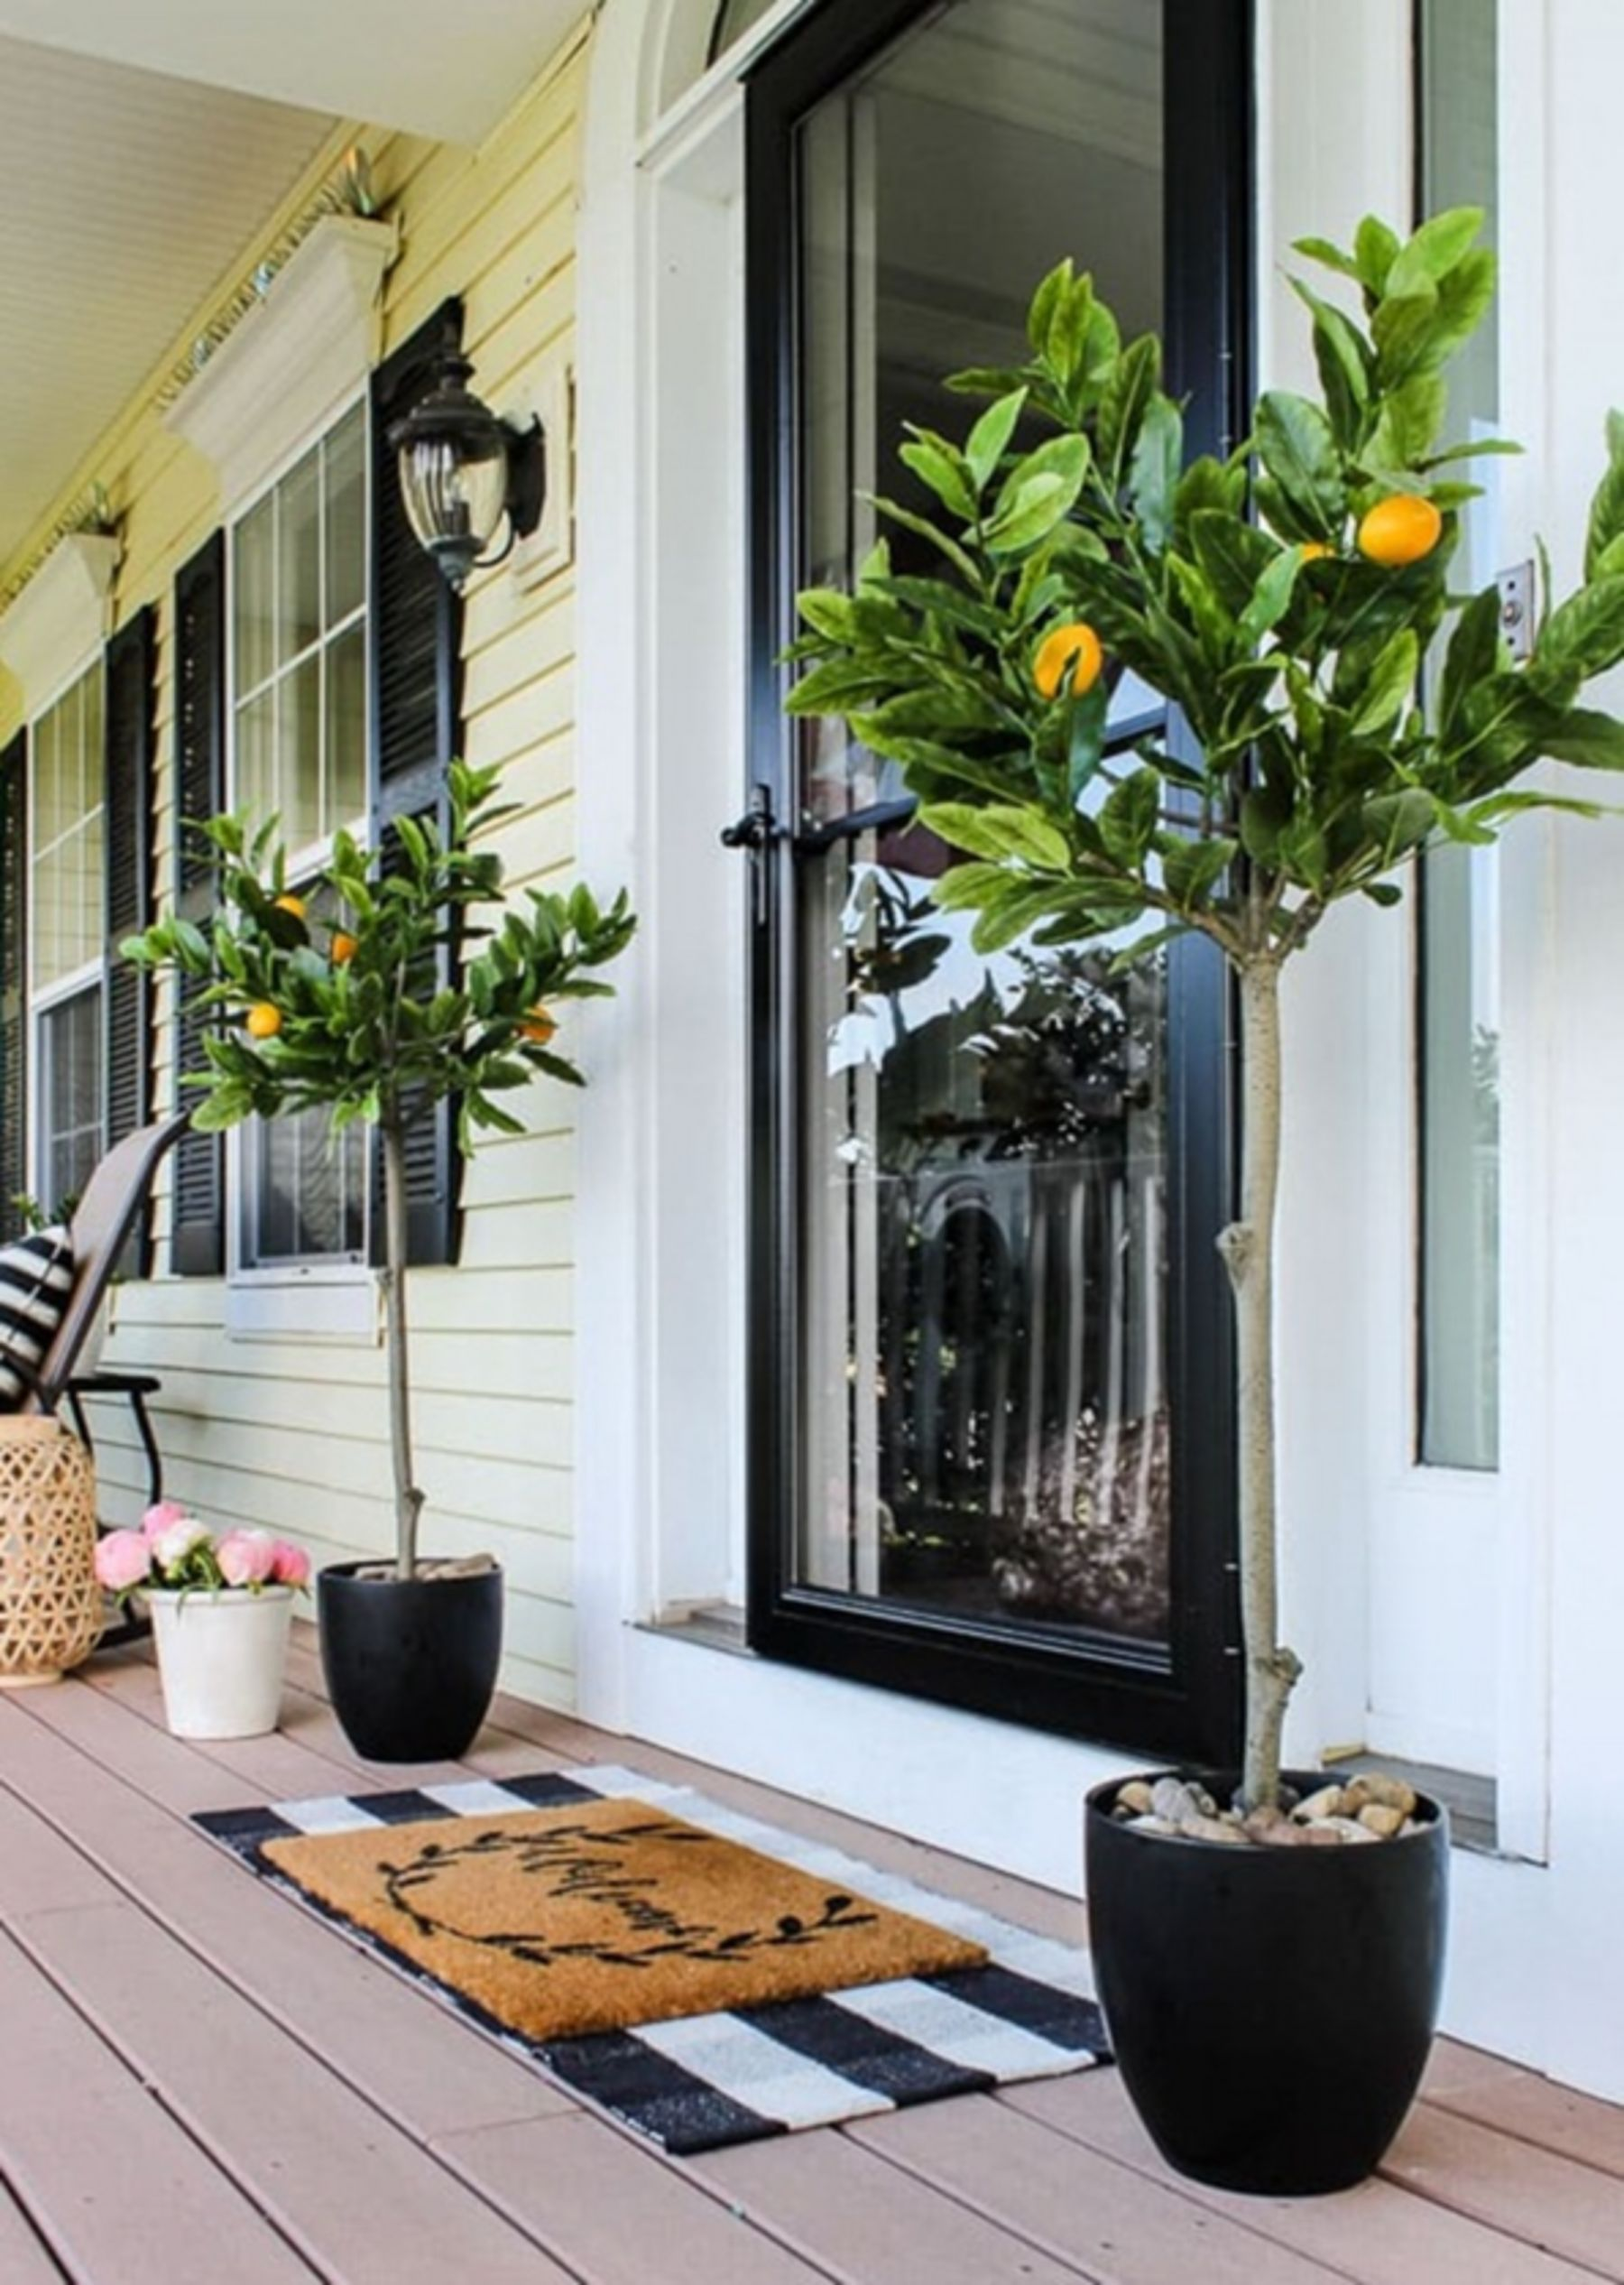 21 Easy and Cheap Summer Decoration Ideas For Front Porch